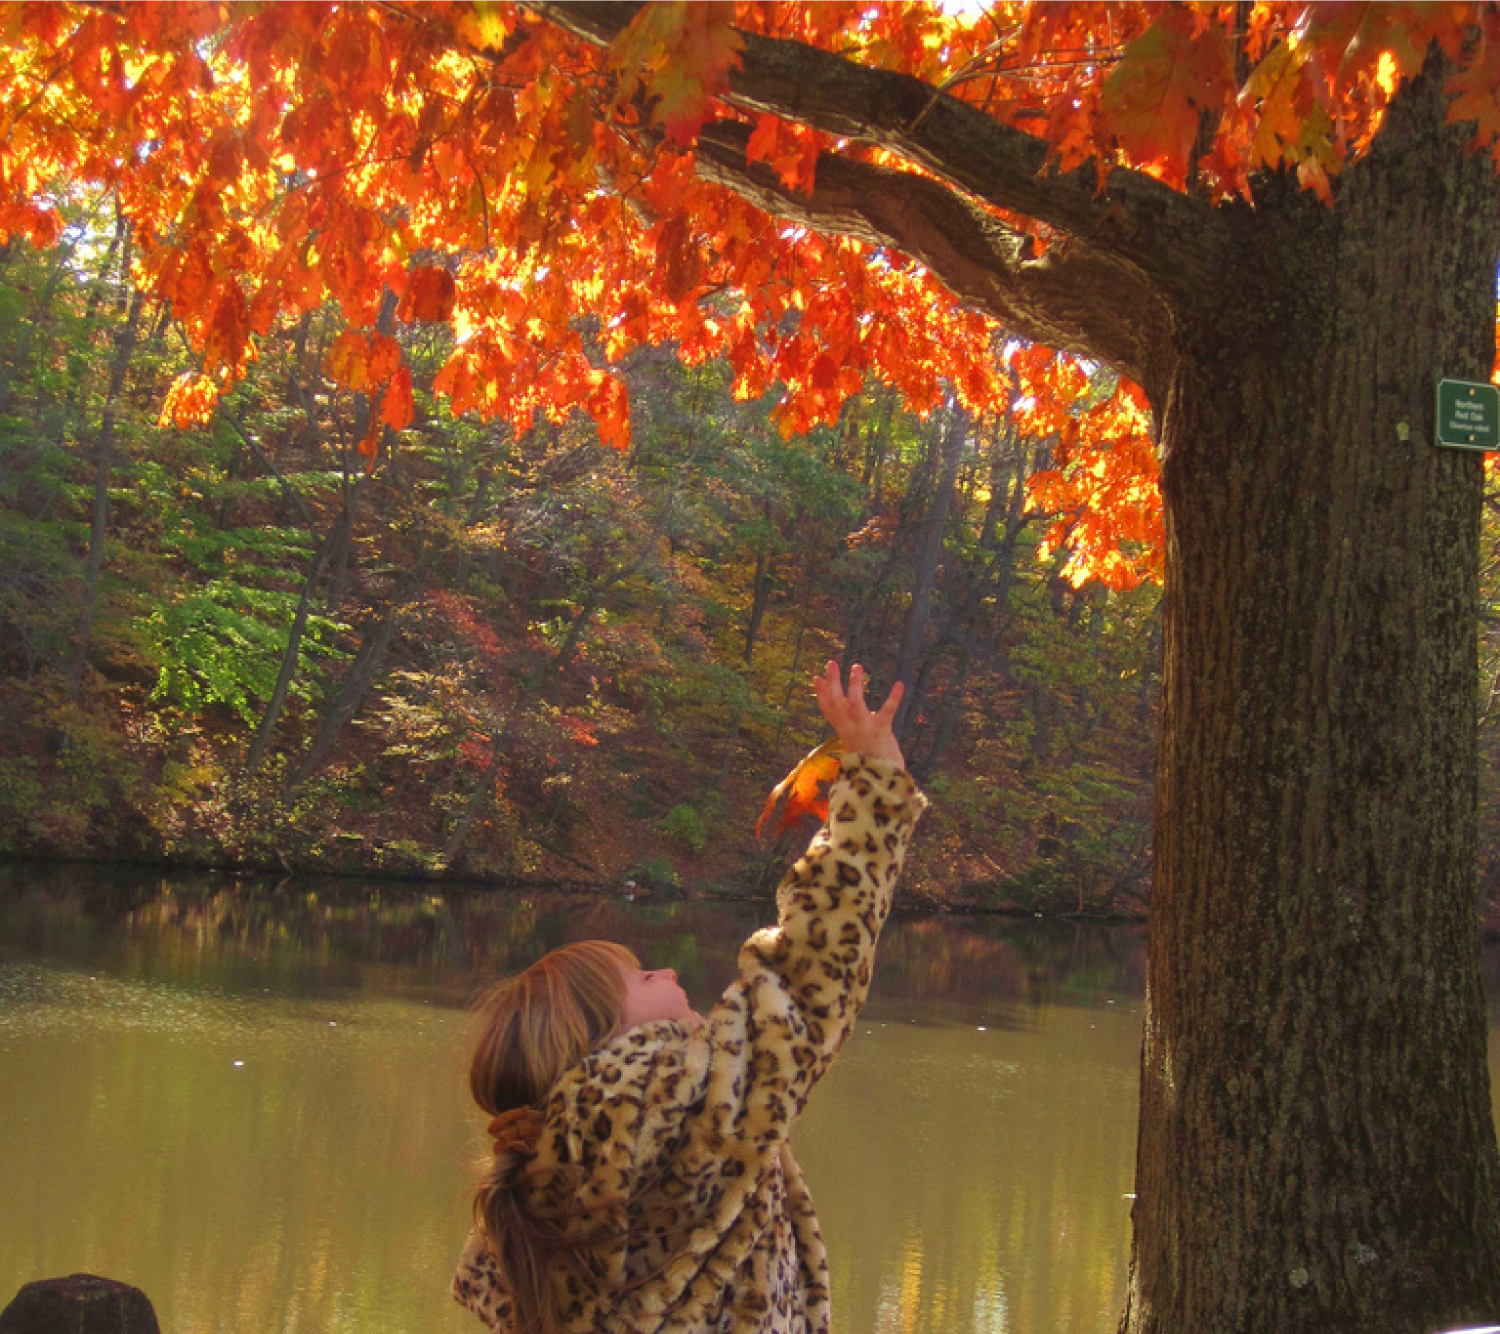 This photo shows a young girl reaching for an orange leaf on an oak tree. She is on a walkway near a creek. The opposite shore is a deep slope covered with more trees in autumn colors.